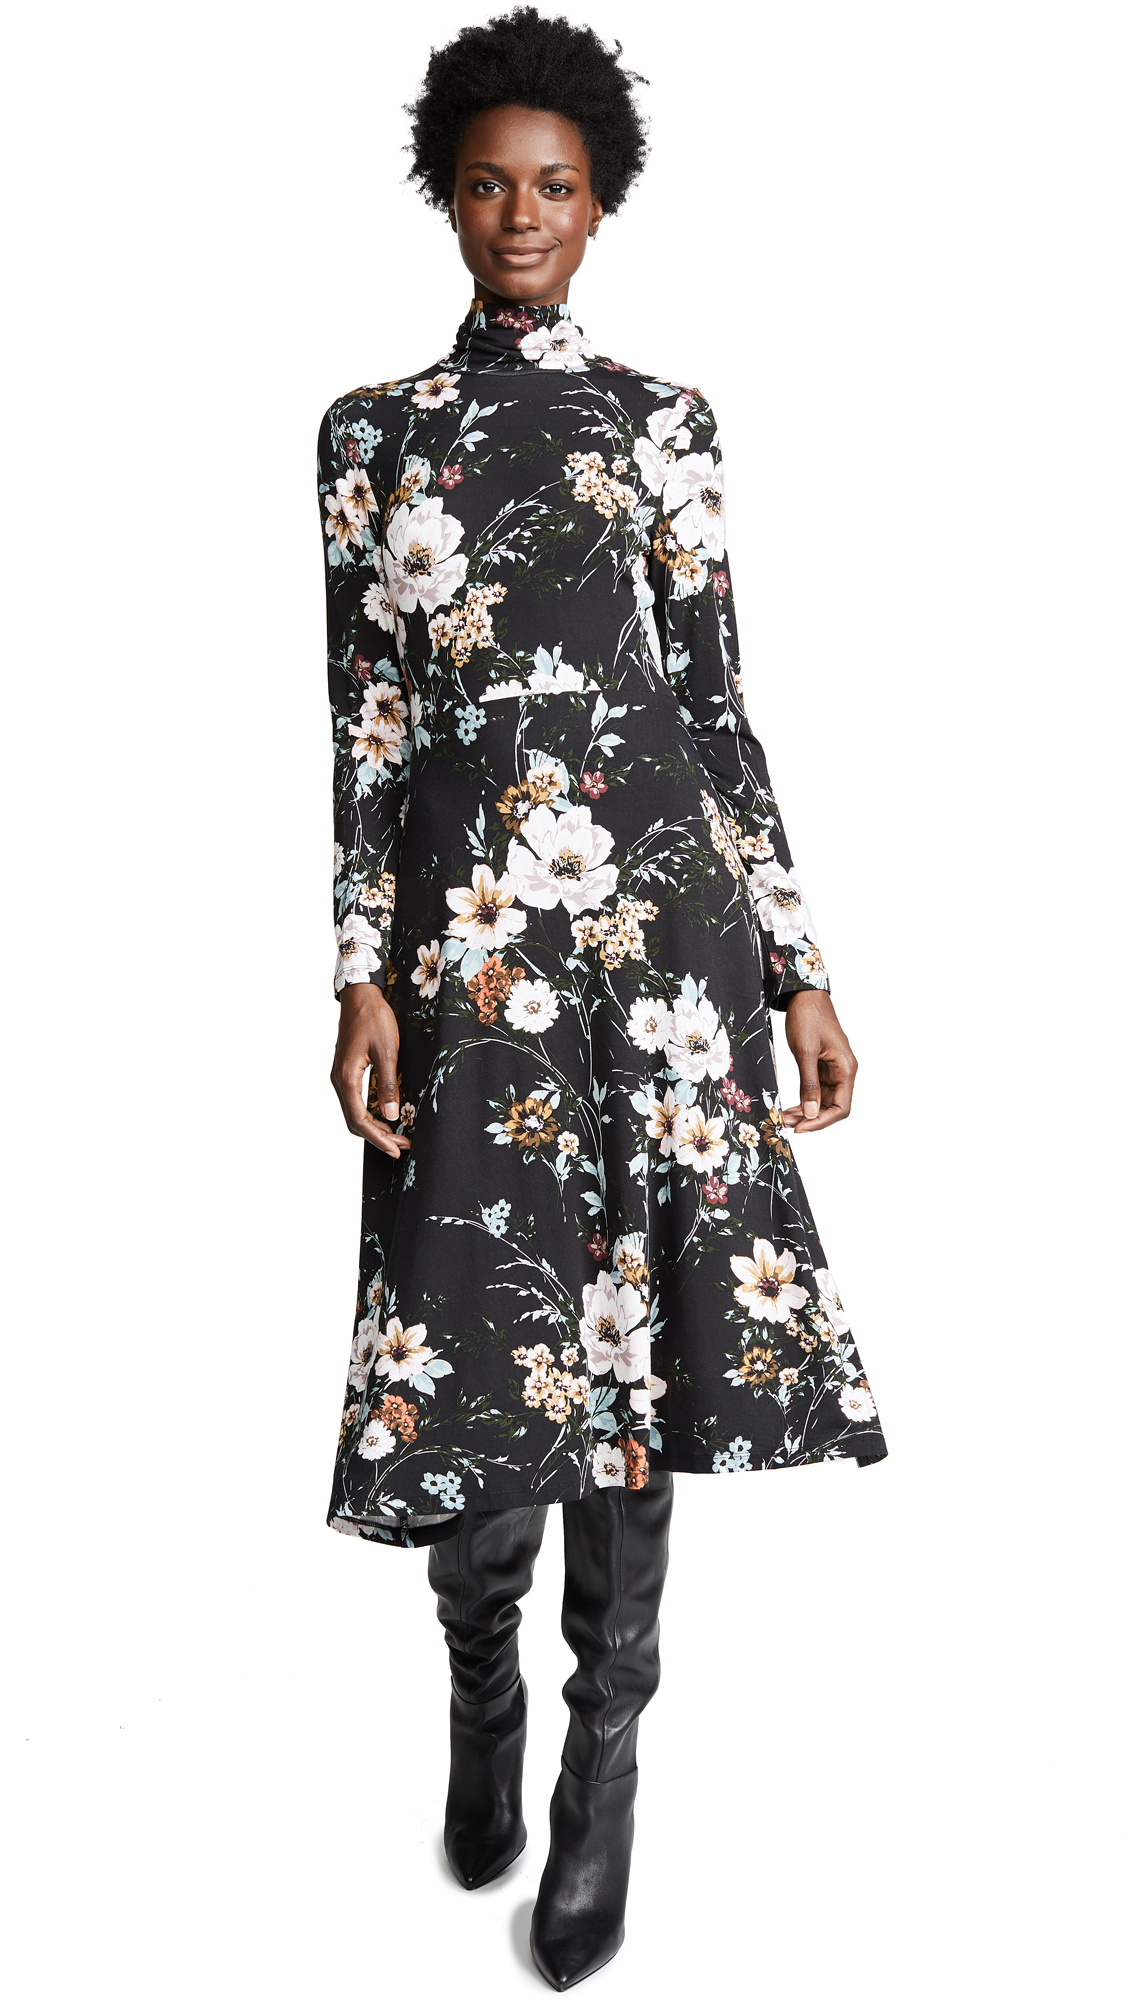 YUMI KIM Stargaze Dress in Flower Patch Black